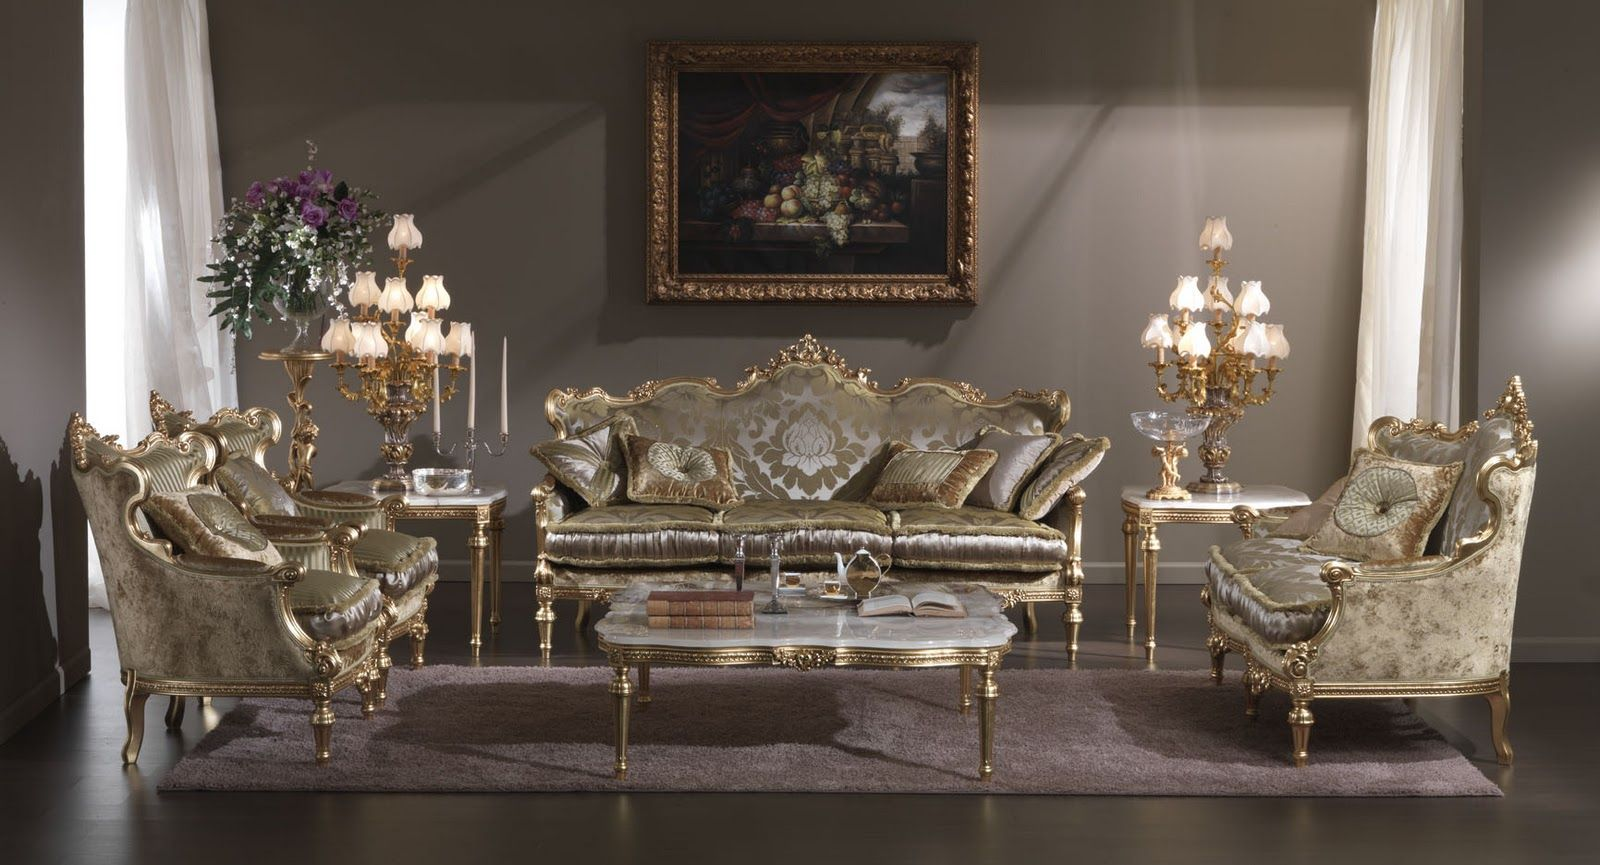 Antique Living Room Designs Fascinating Italian Living Room Furniture   Italian Classic Furniture Design Decoration